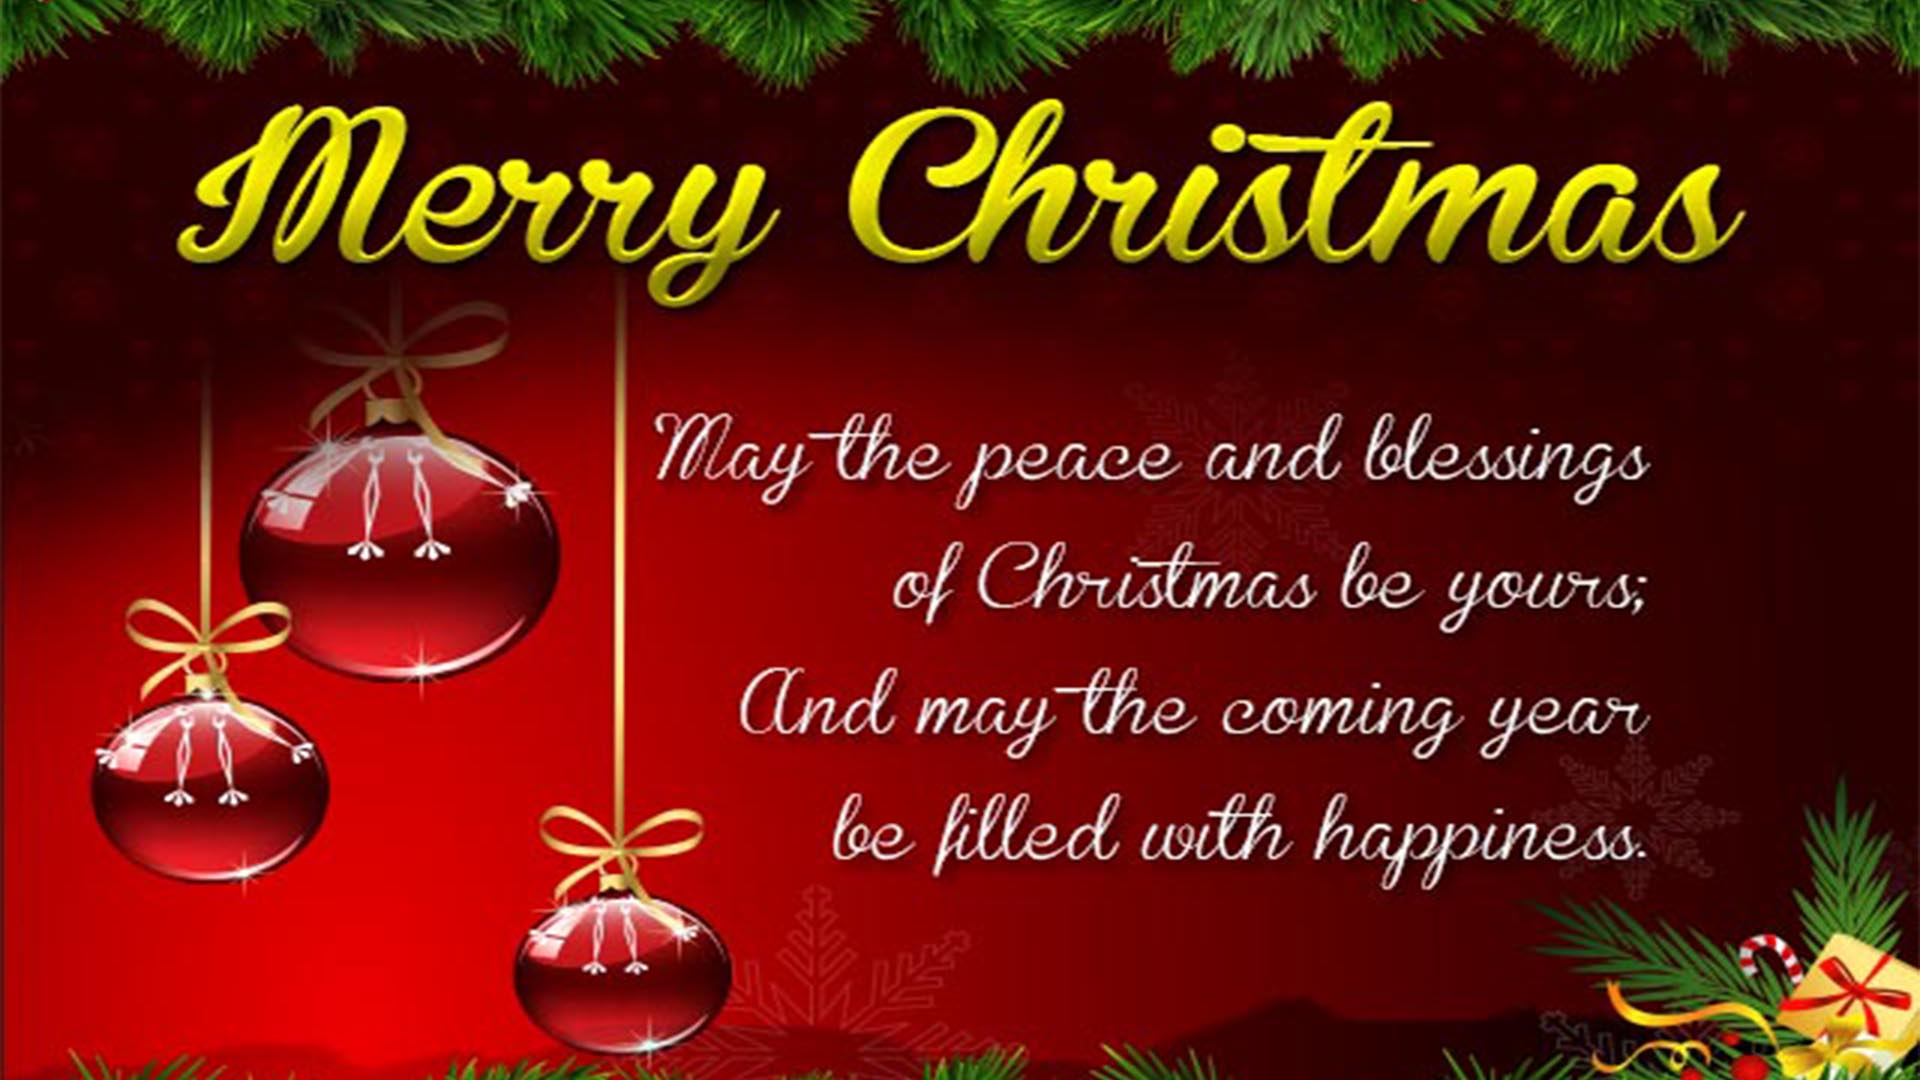 Christmas Greeting Cards Hd Images 2017 Xmas Greetings Wishes